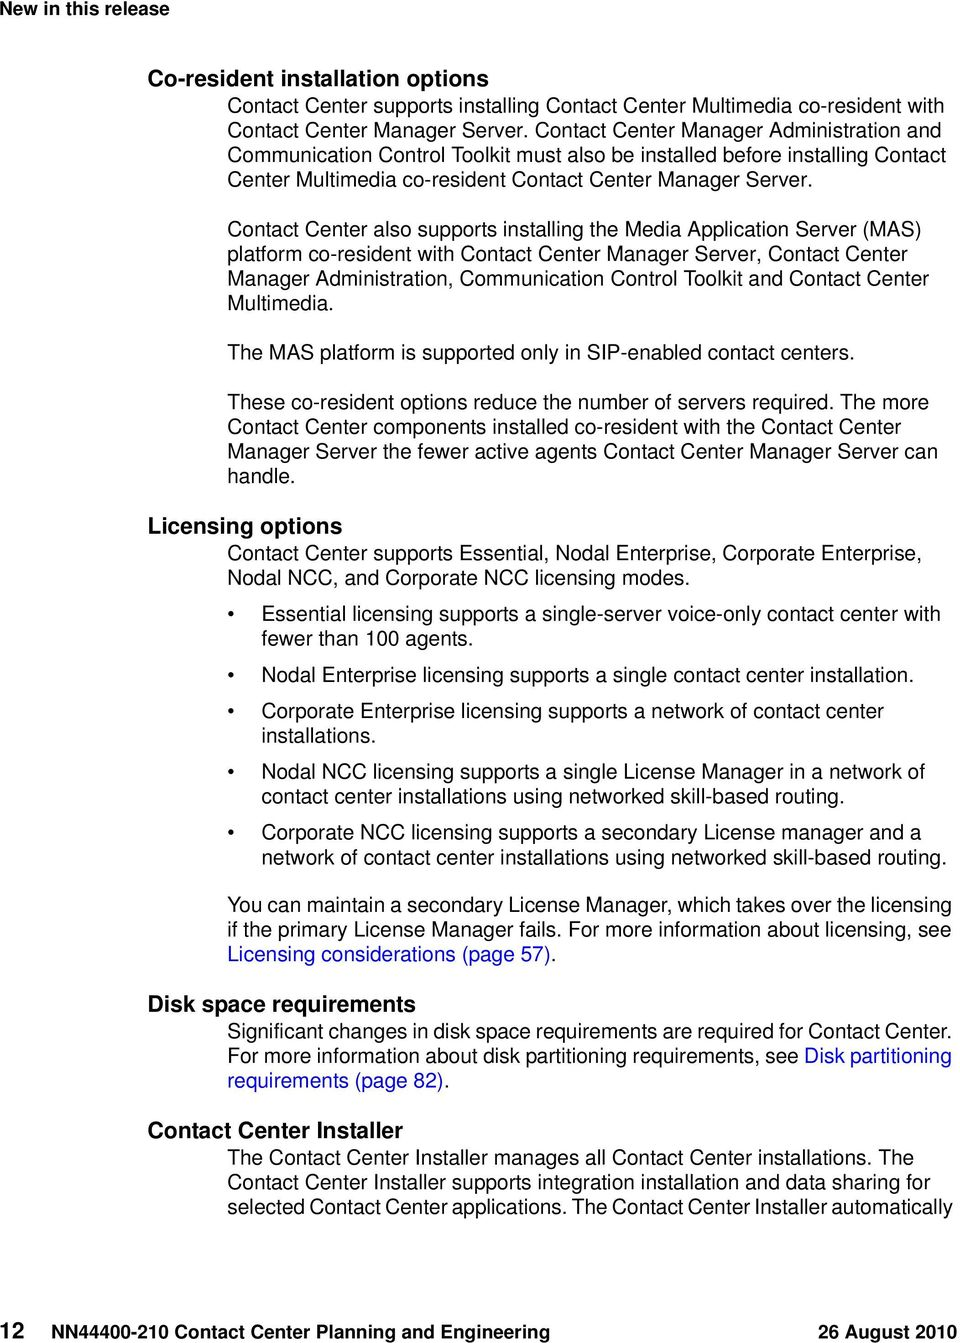 Contact Center also supports installing the Media Application Server (MAS) platform co-resident with Contact Center Manager Server, Contact Center Manager Administration, Communication Control